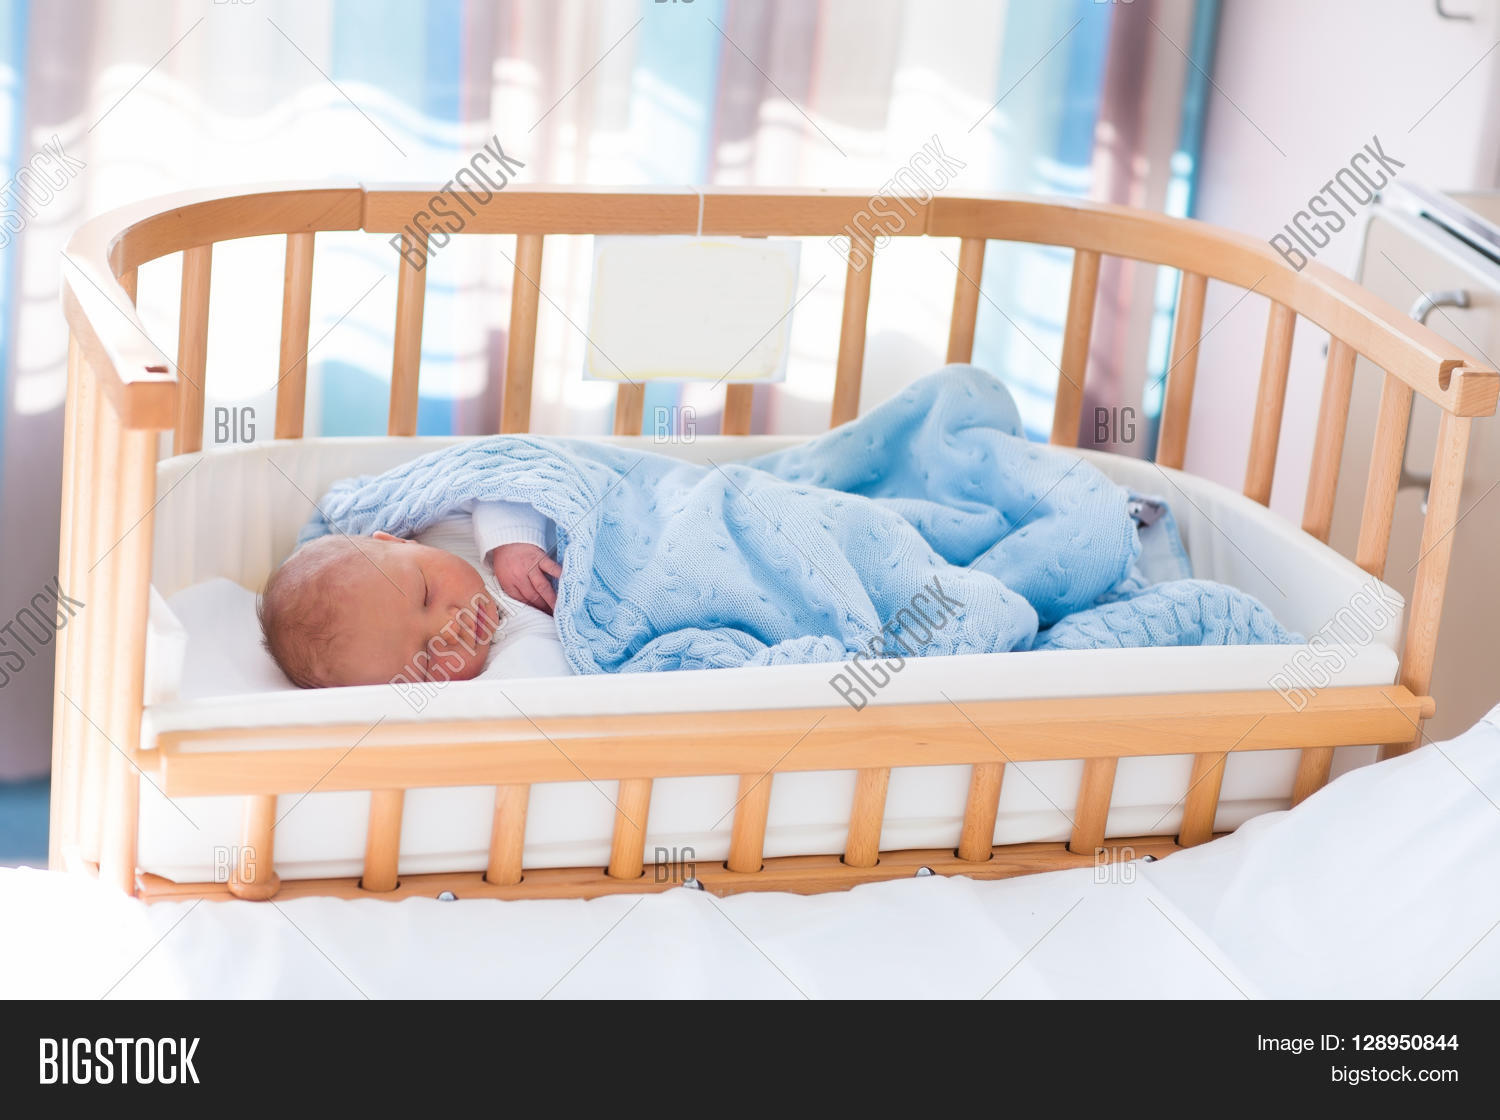 Baby bed co sleeper - Newborn Baby In Hospital Room New Born Child In Wooden Co Sleeper Crib Infant Sleeping In Bedside